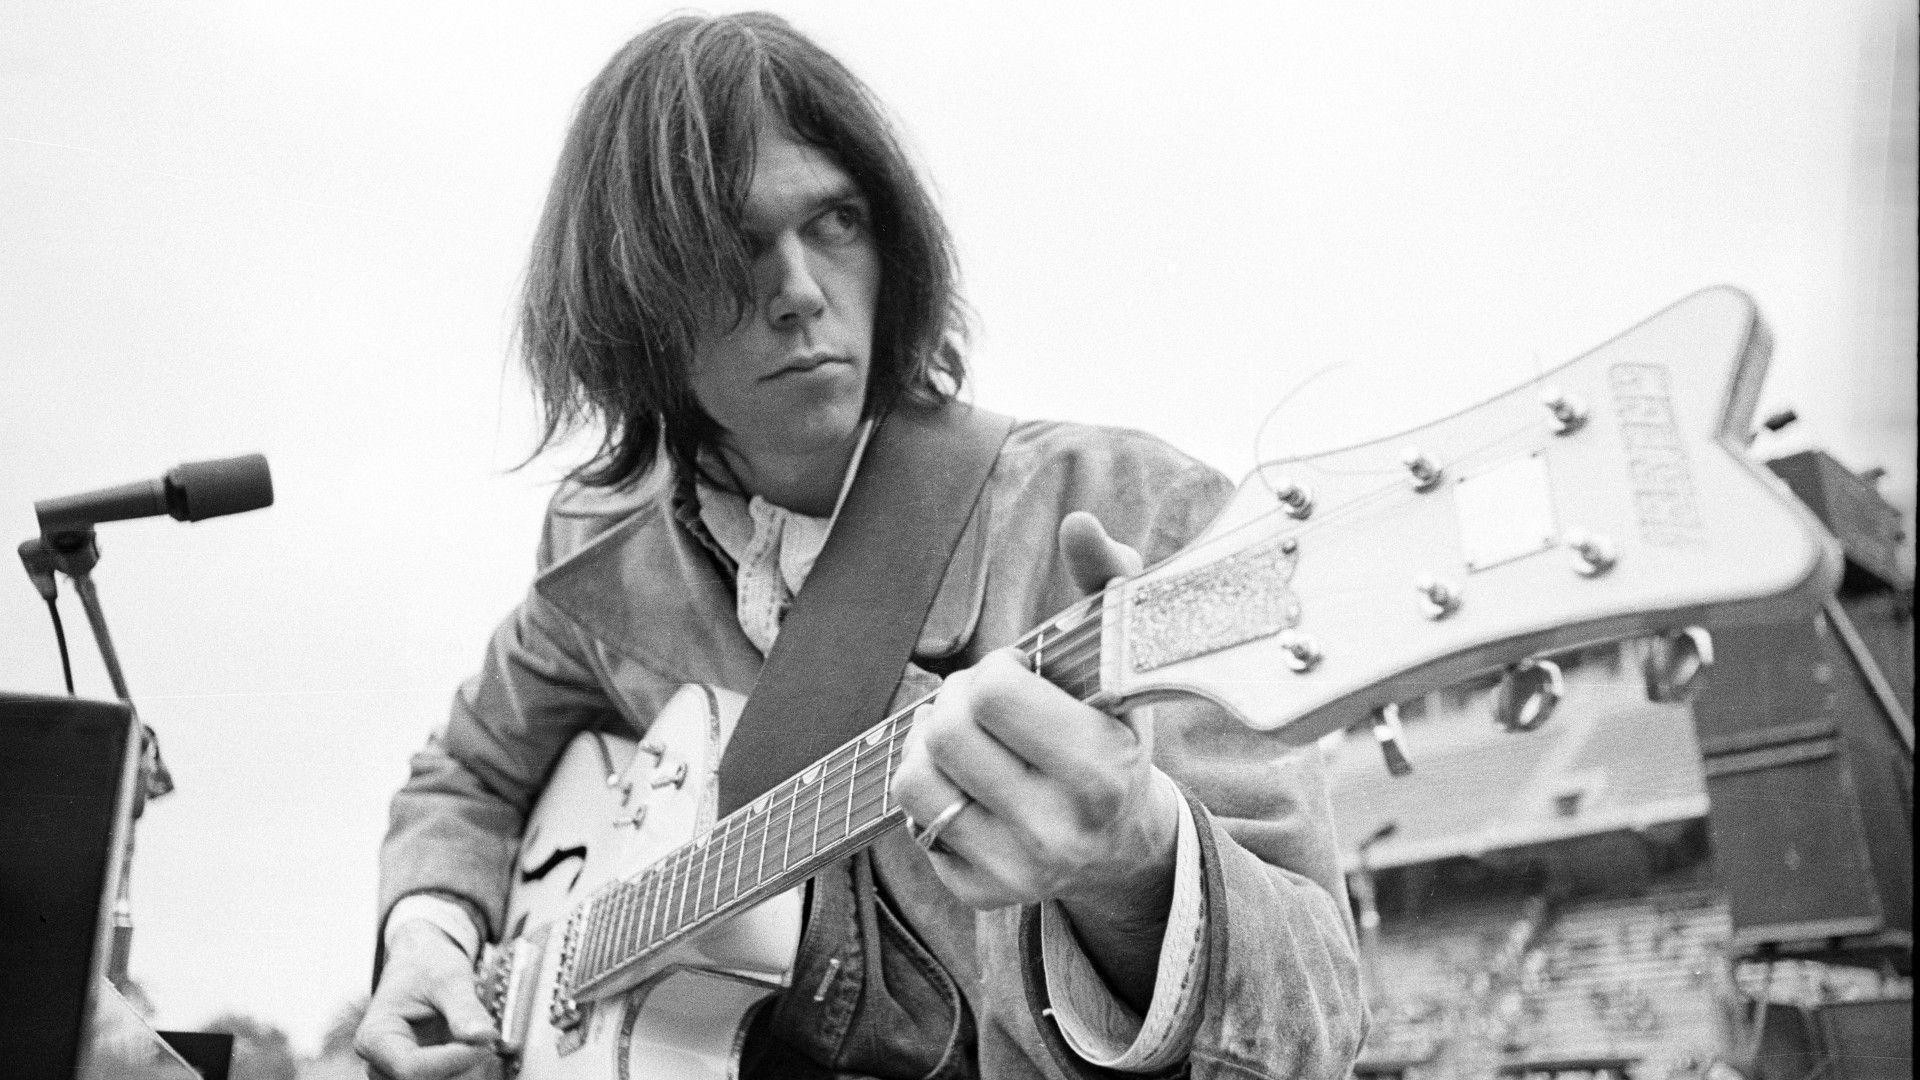 1920x1080 Download Wallpaper  Neil young, Guitar, Hair, Microphone .